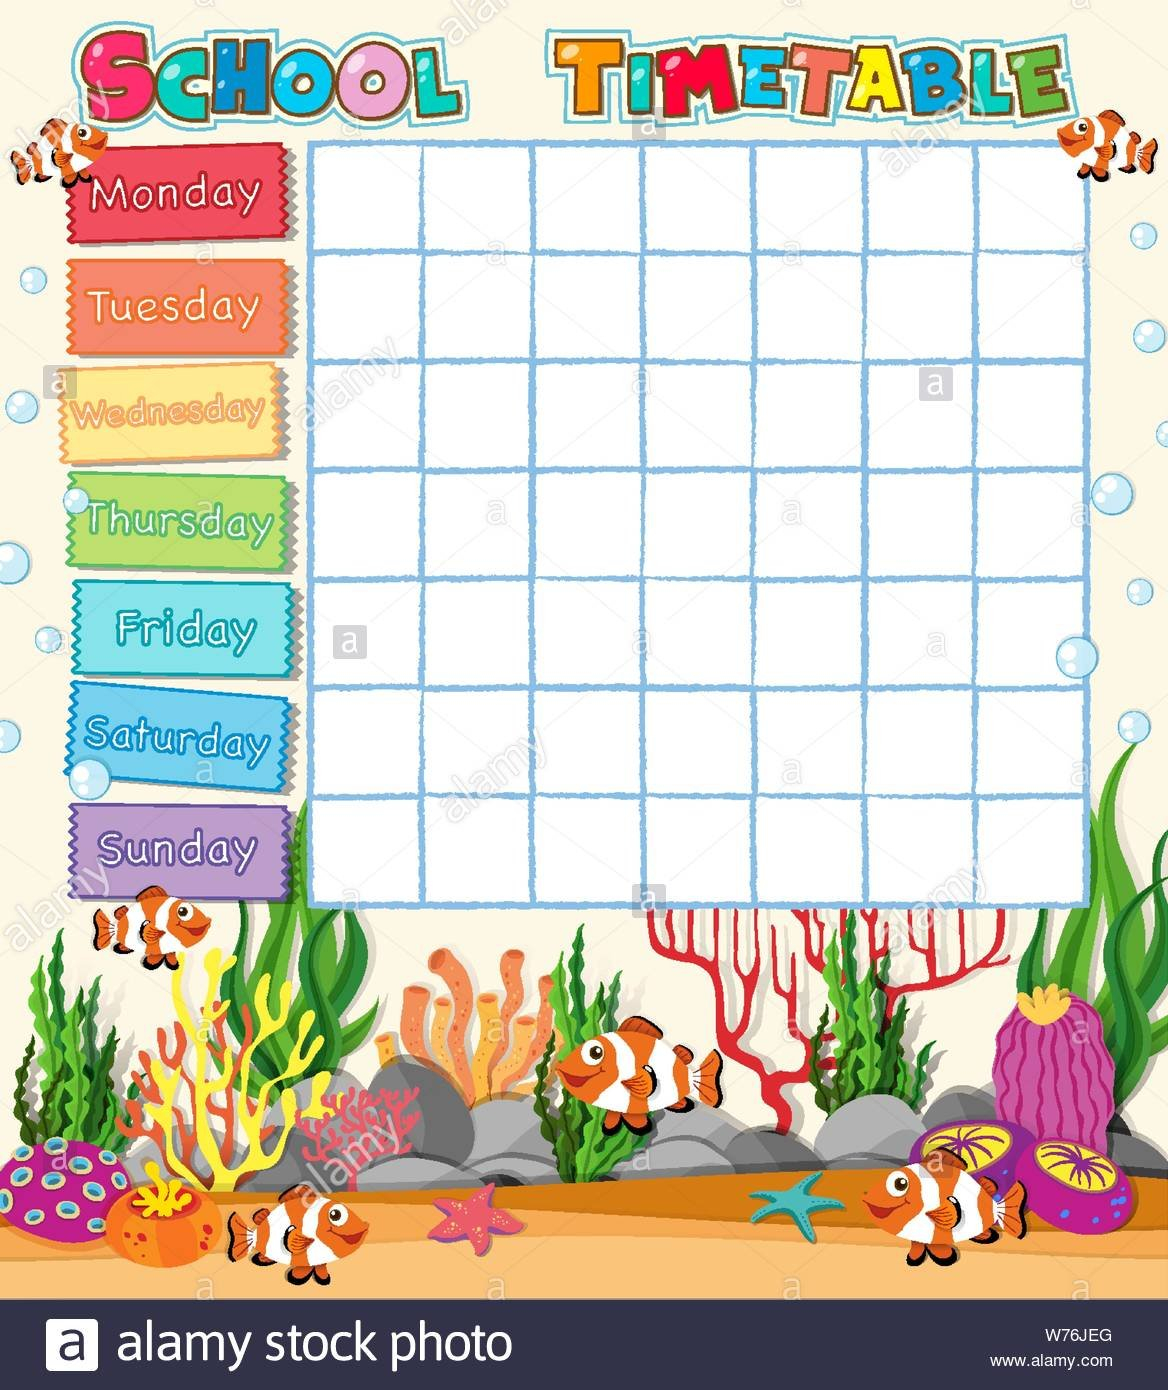 A School Timetable Blank Template With Cartoons Stock Vector Blank Monday To Friday Timetable